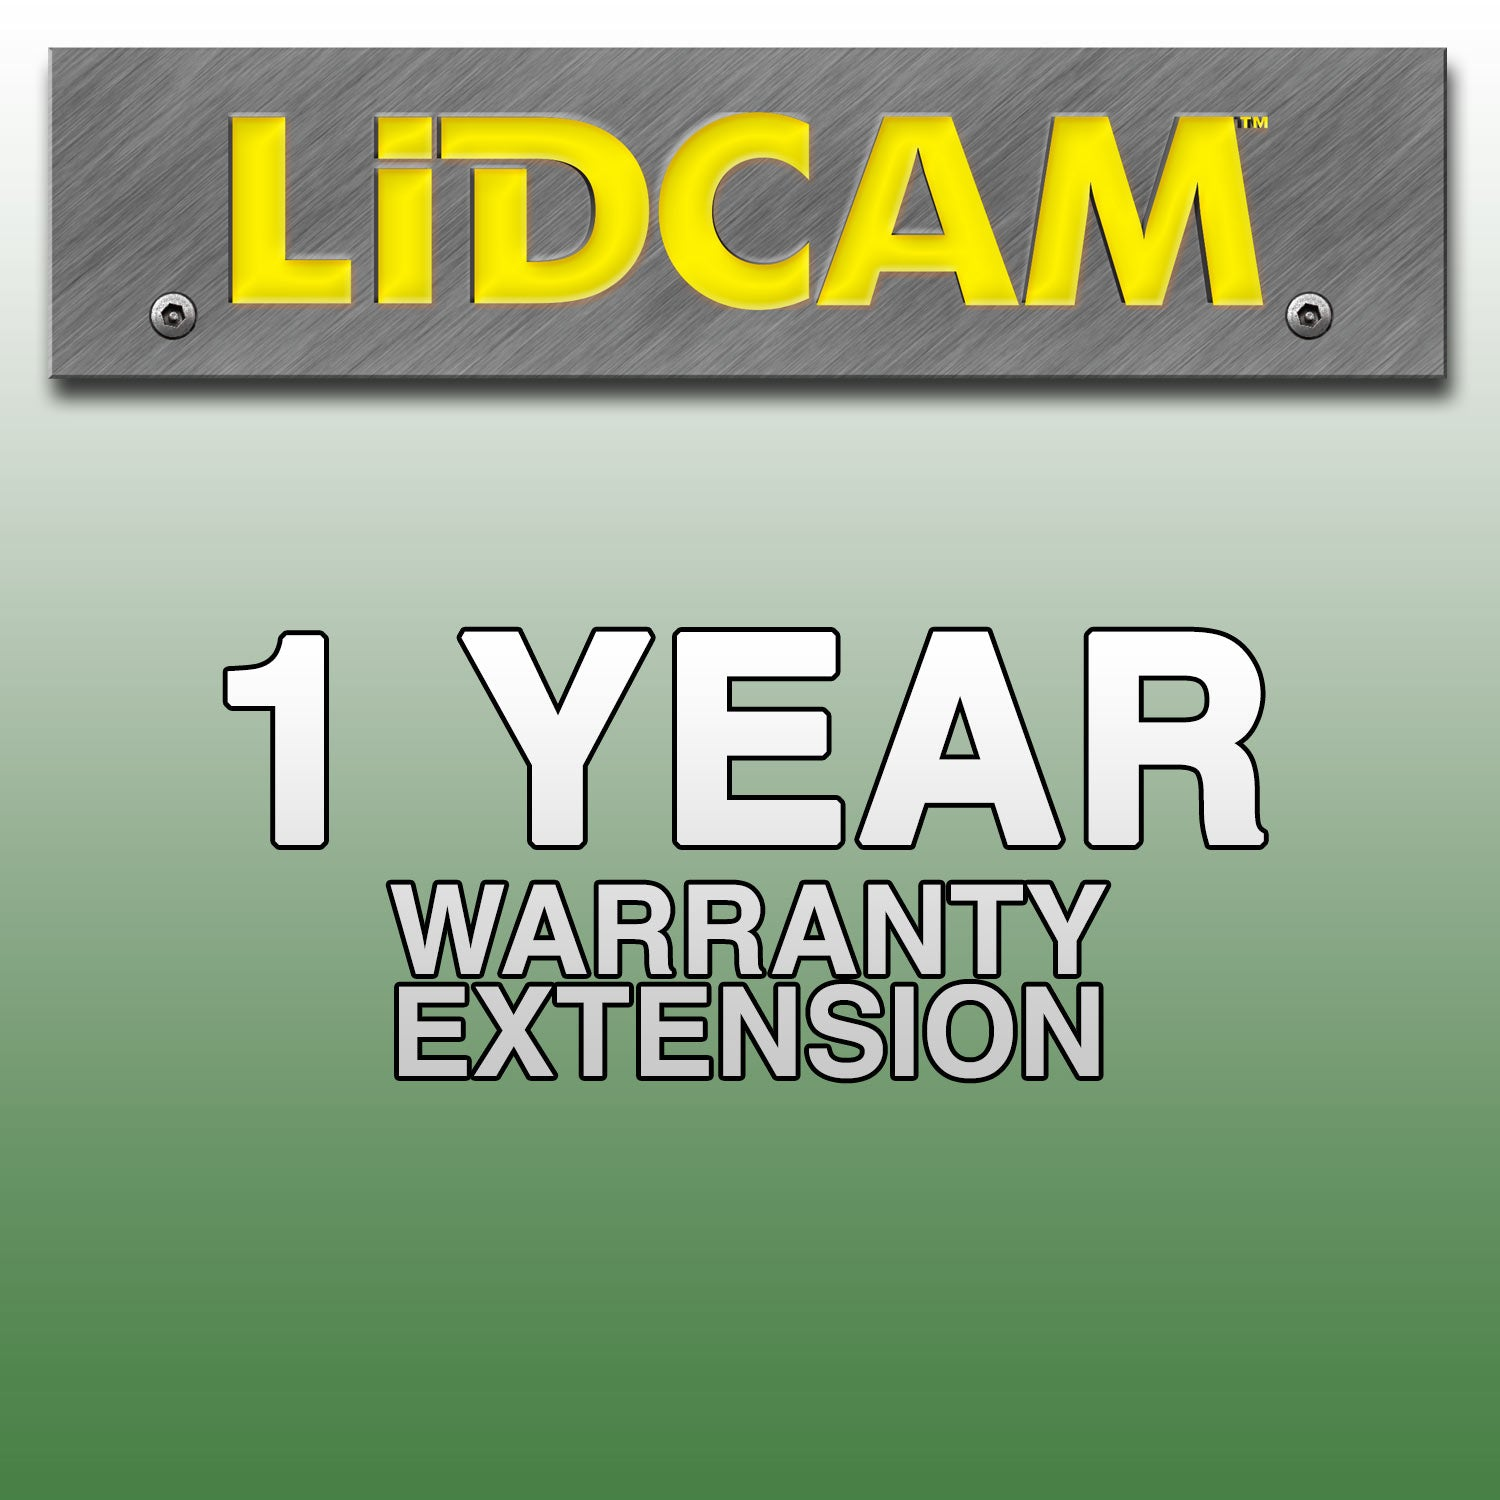 1 Year Warranty Extension